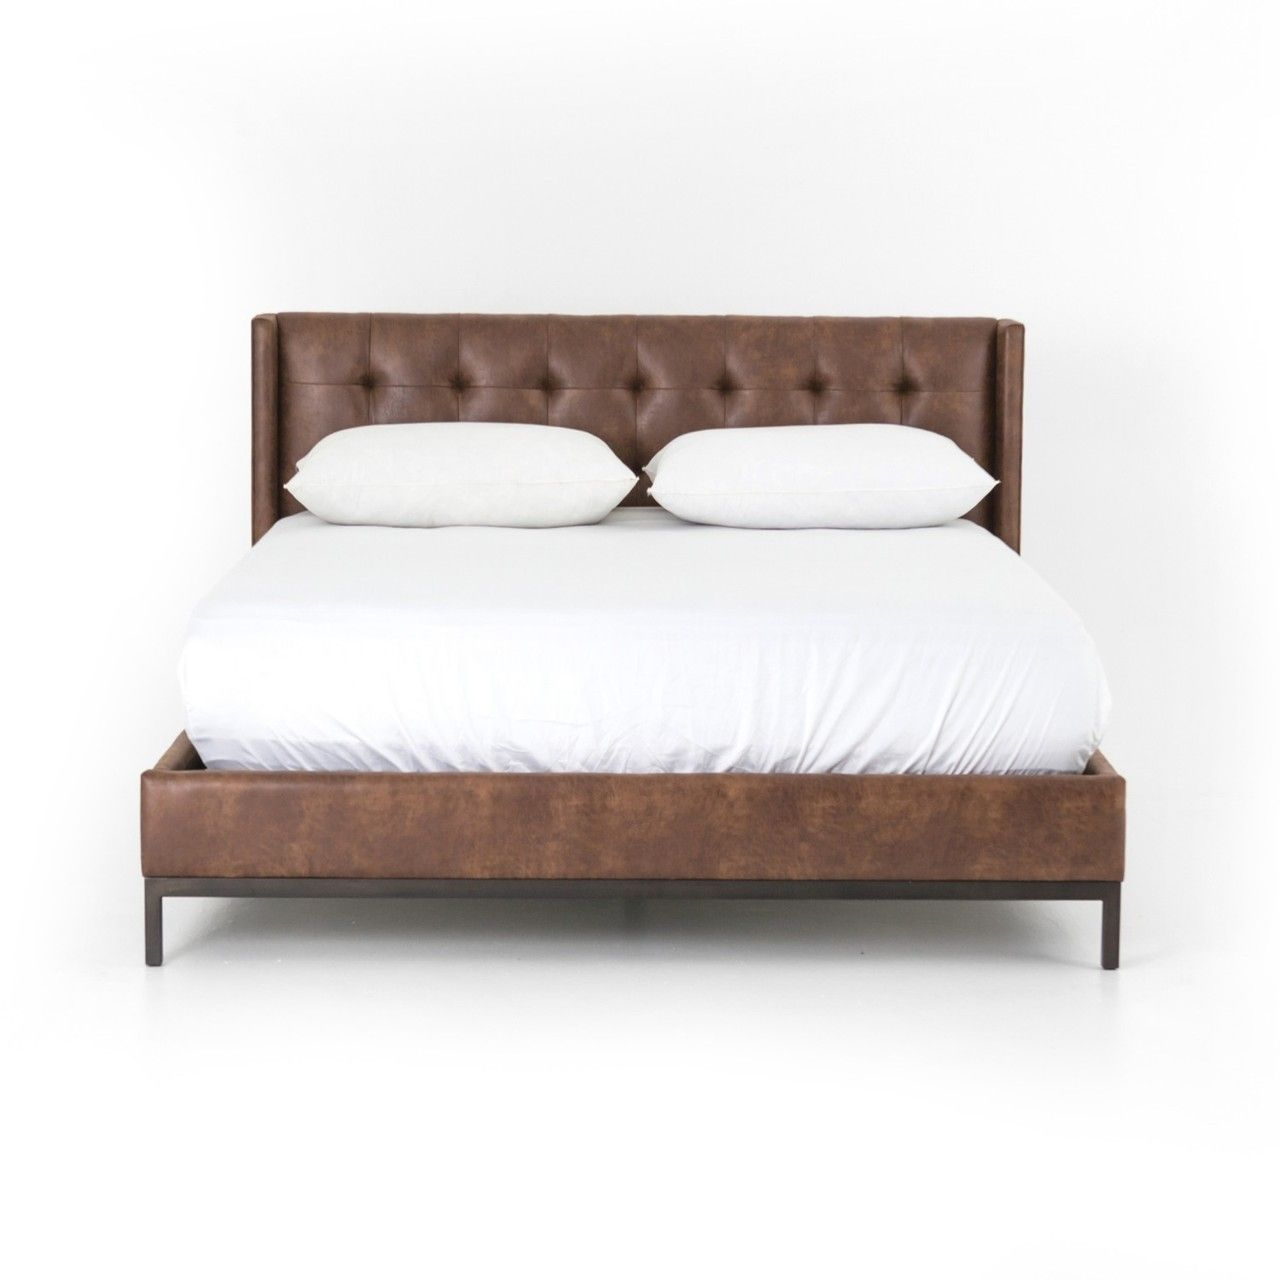 Newhall Box Tufted Shelter Leather Platform Bed King In 2020 Leather Bed Frame Brown Leather Bed Leather Platform Bed